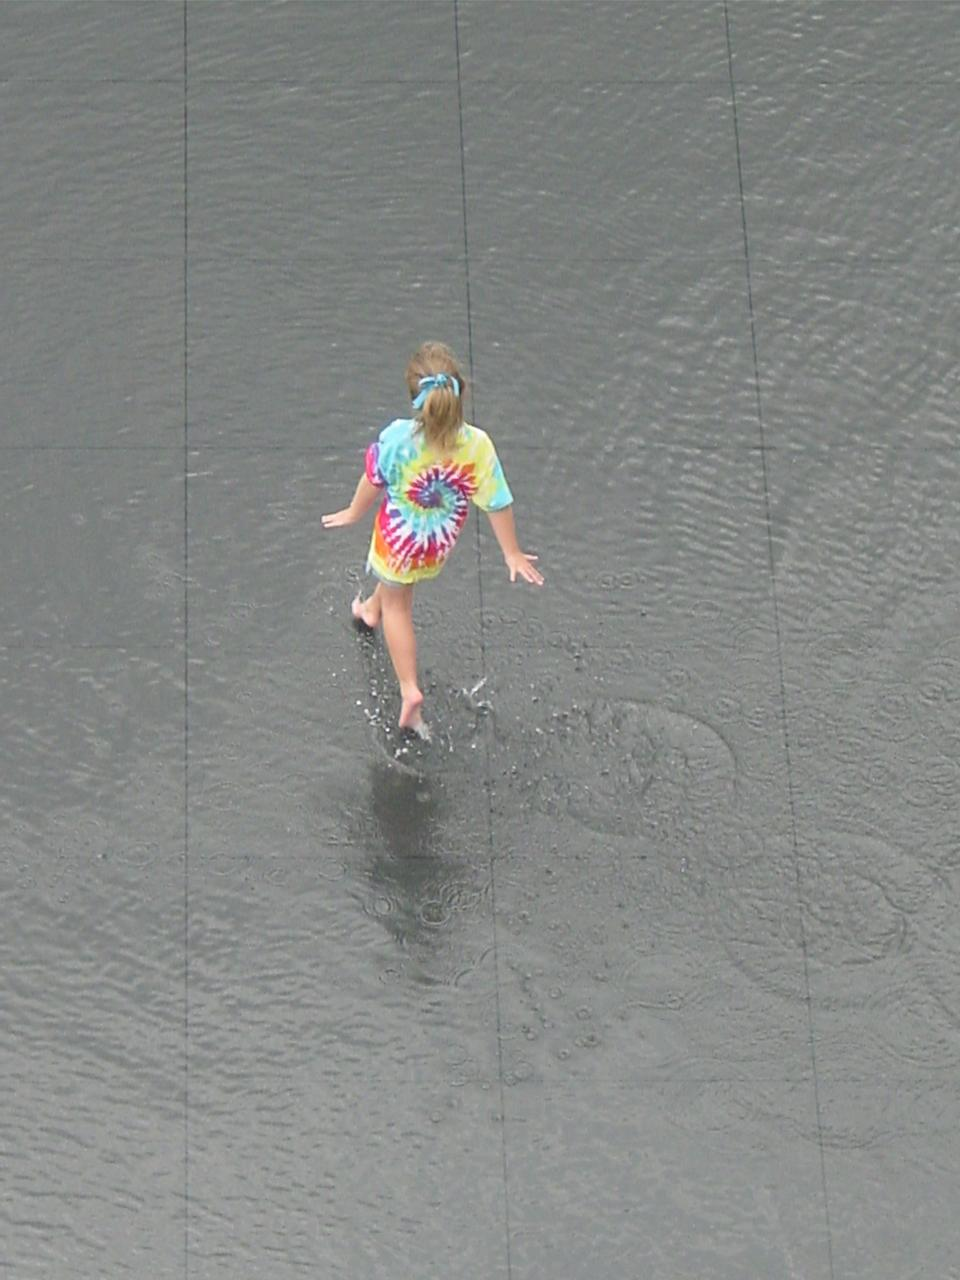 Crown Fountain, a child plays in the reflecting pool, opening day, July 16, 2004